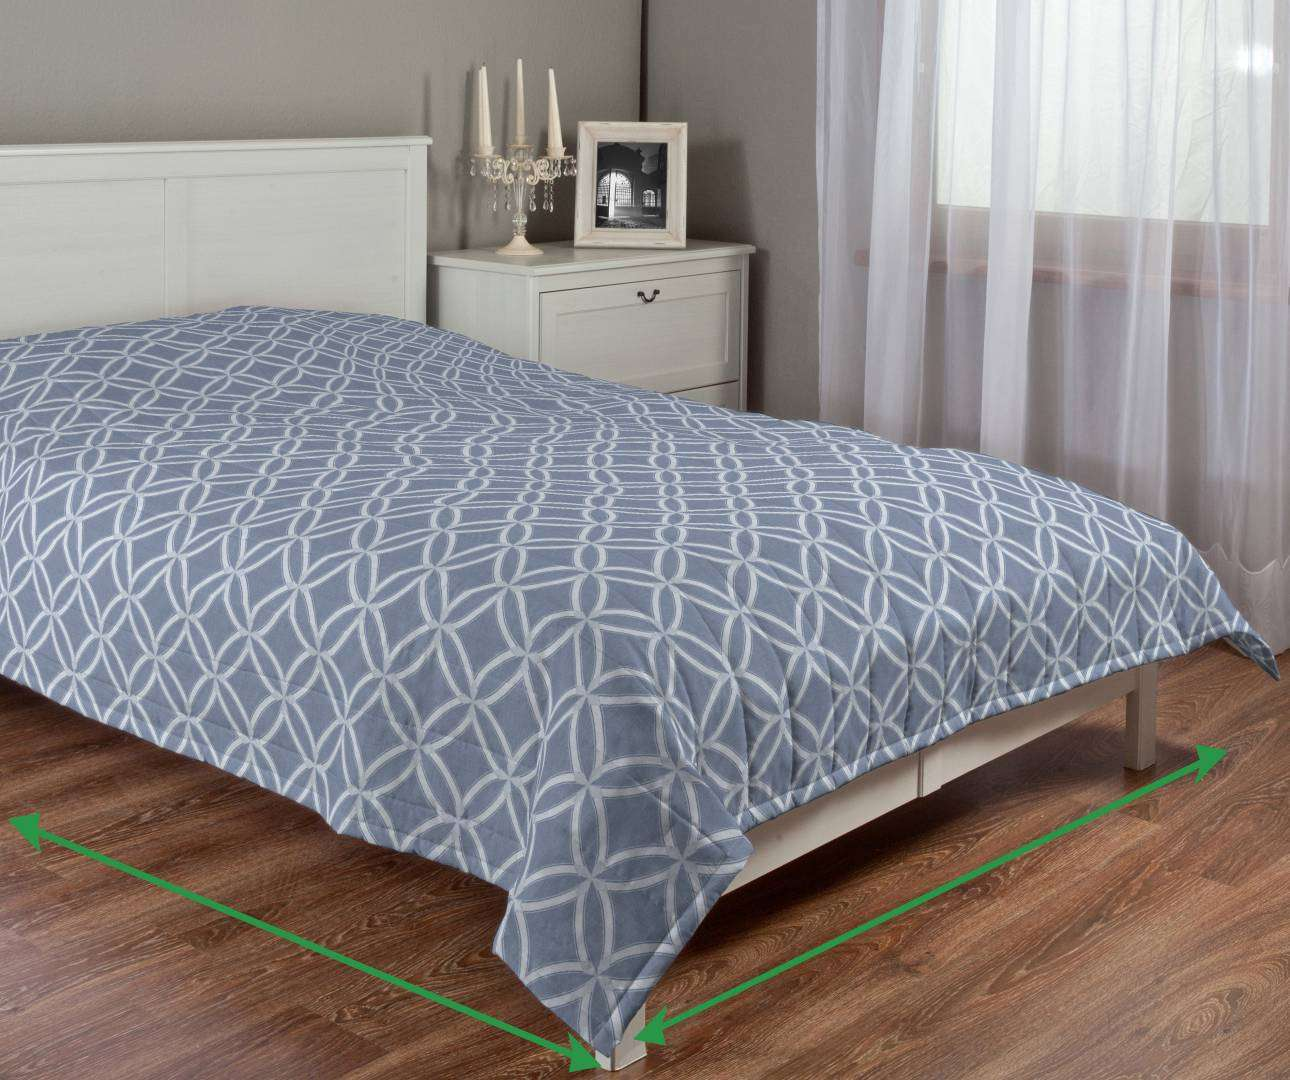 Quilted throw (vertical quilt pattern) in collection Venice, fabric: 140-53